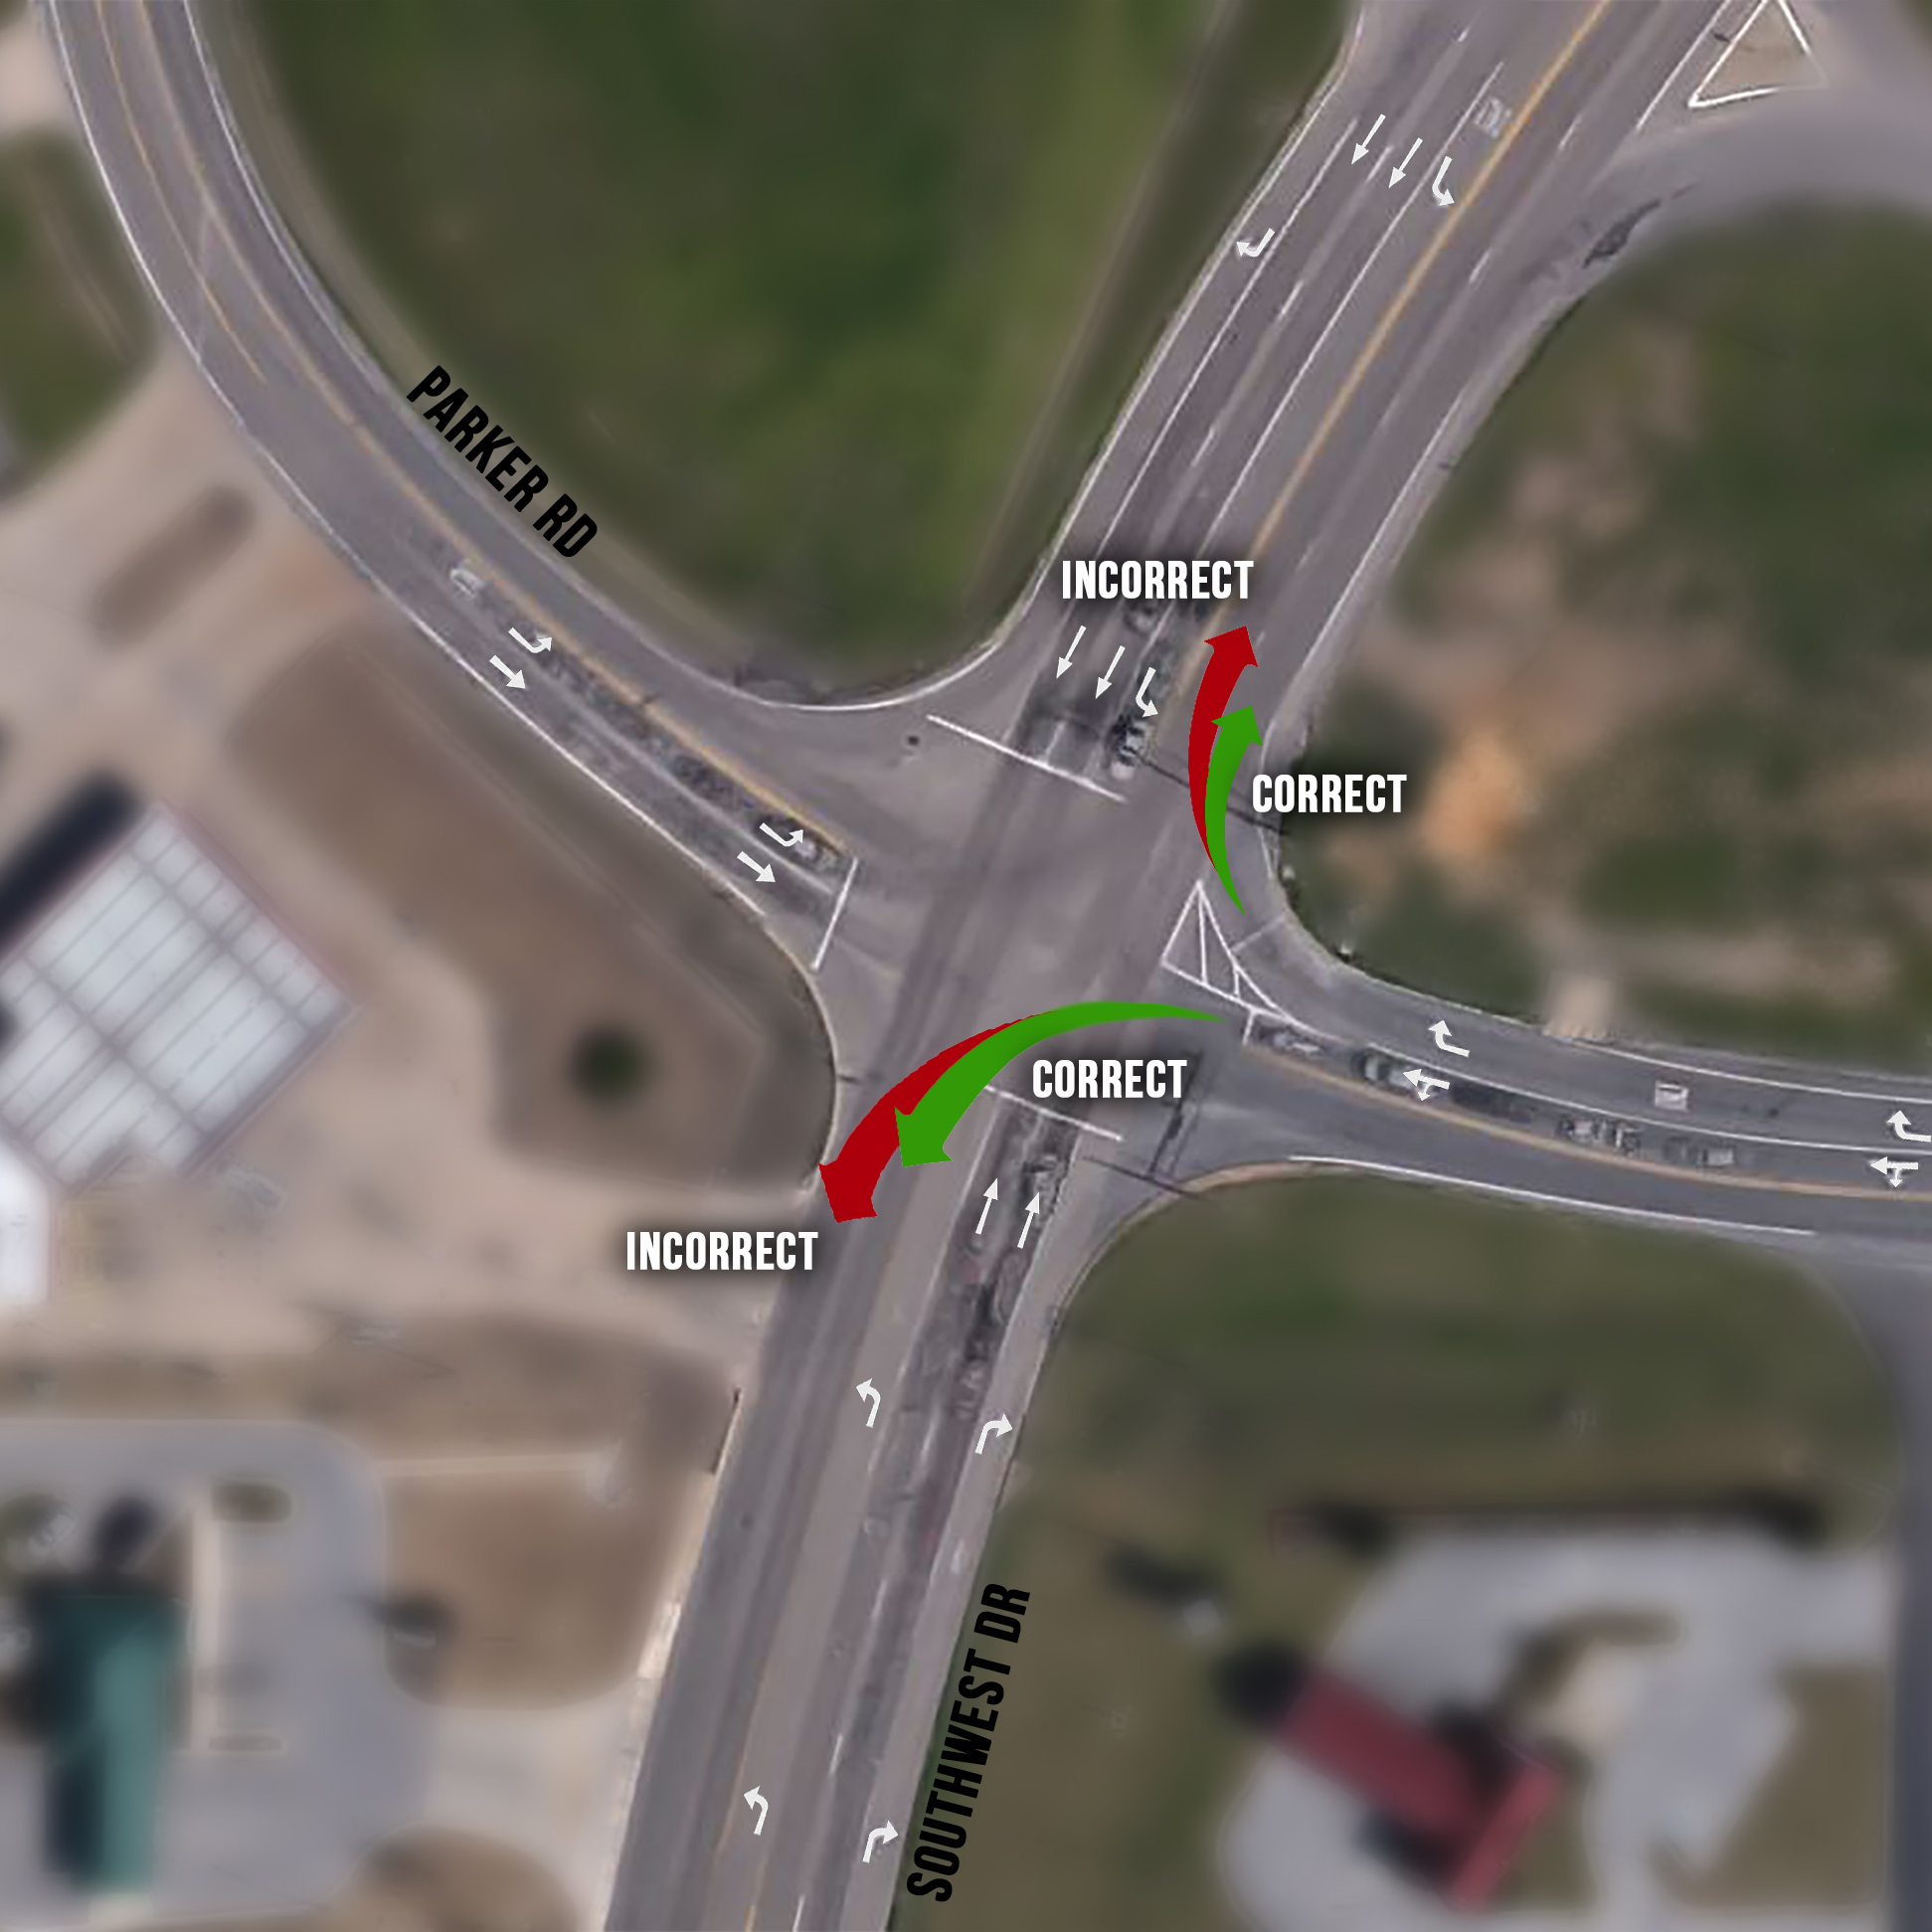 parker and southwest intersection.jpg